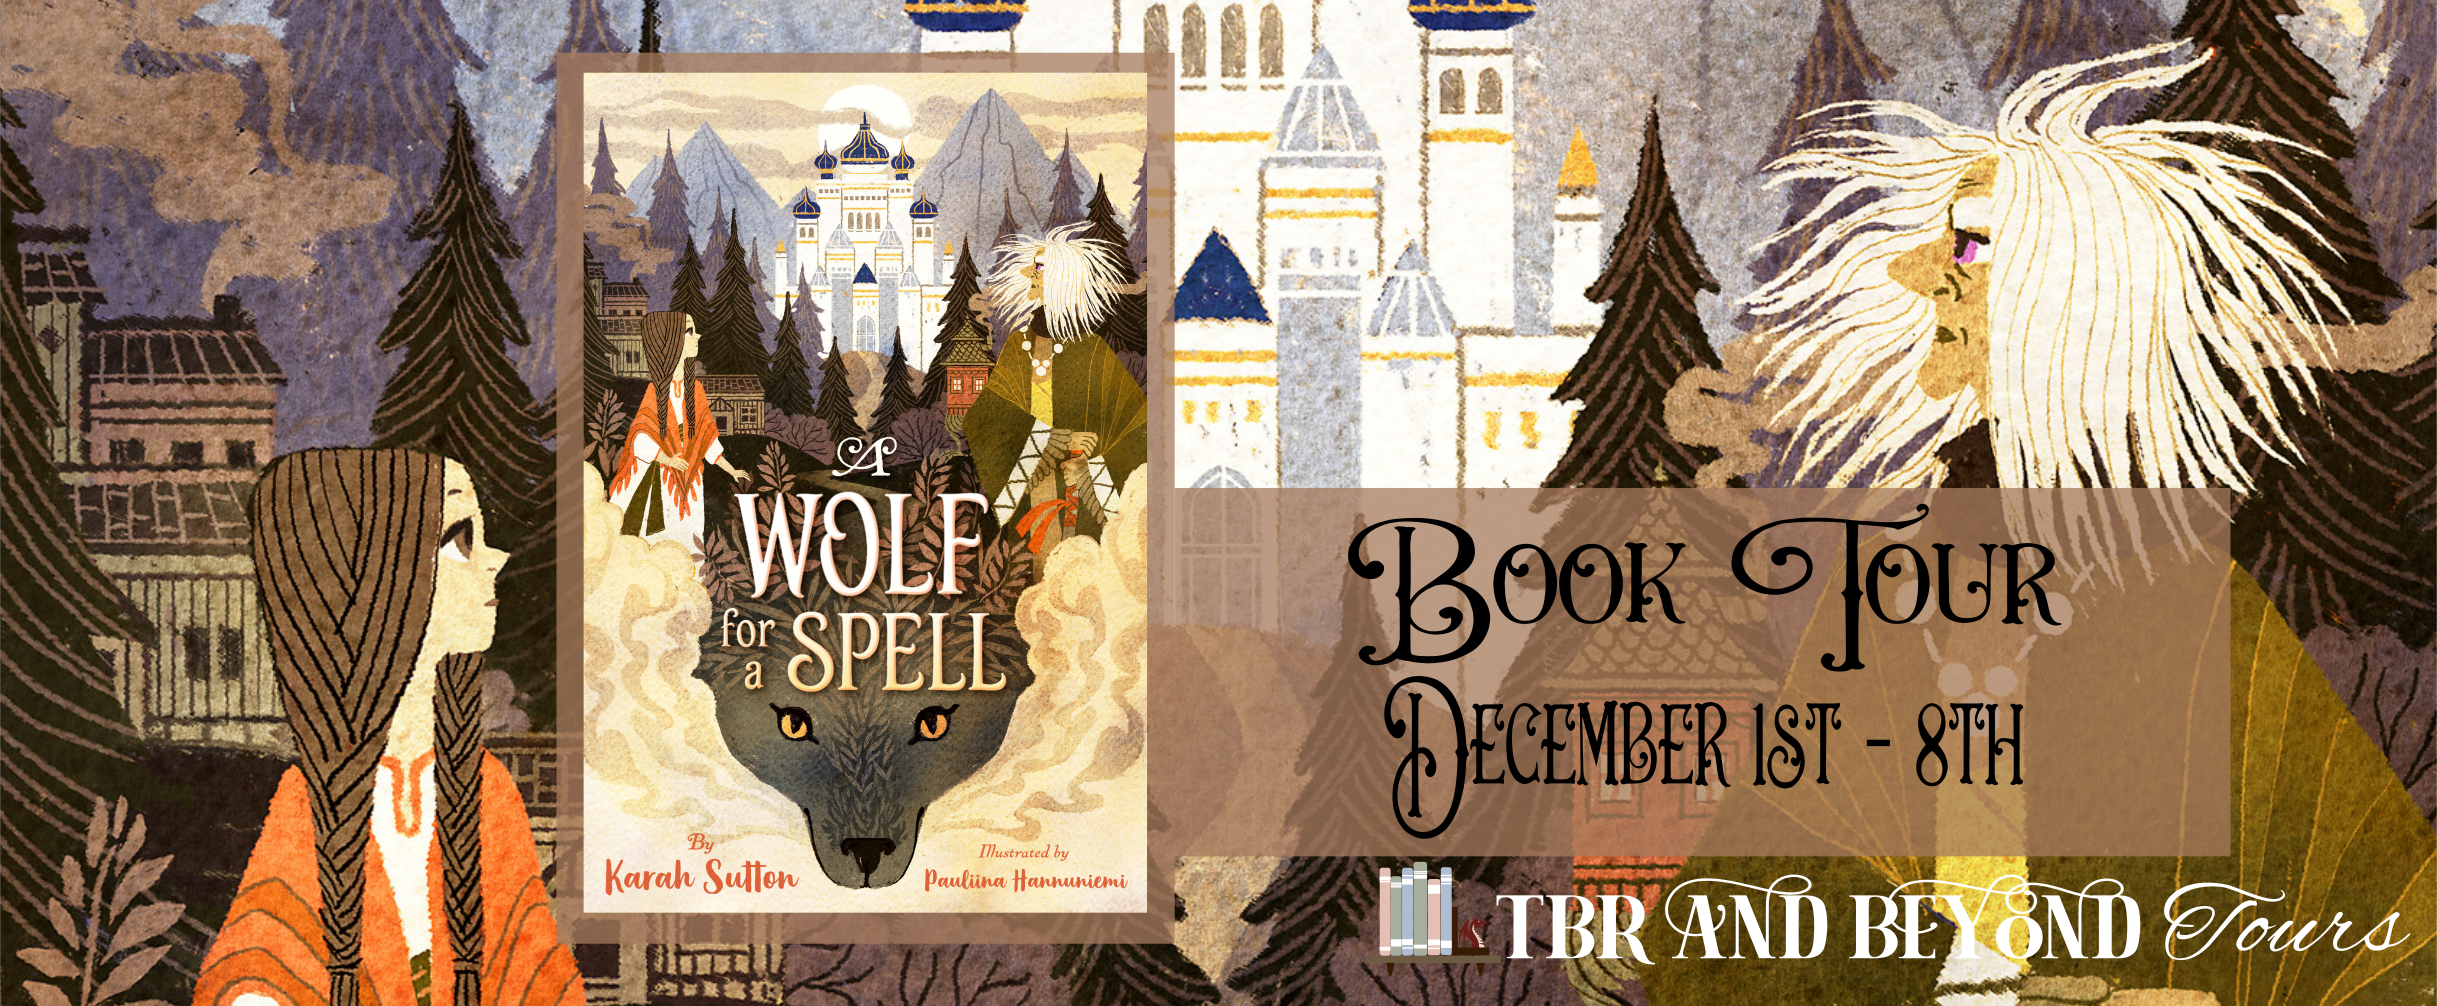 Blog Tour: A Wolf for a Spell by Karah Sutton (Spotlight!)